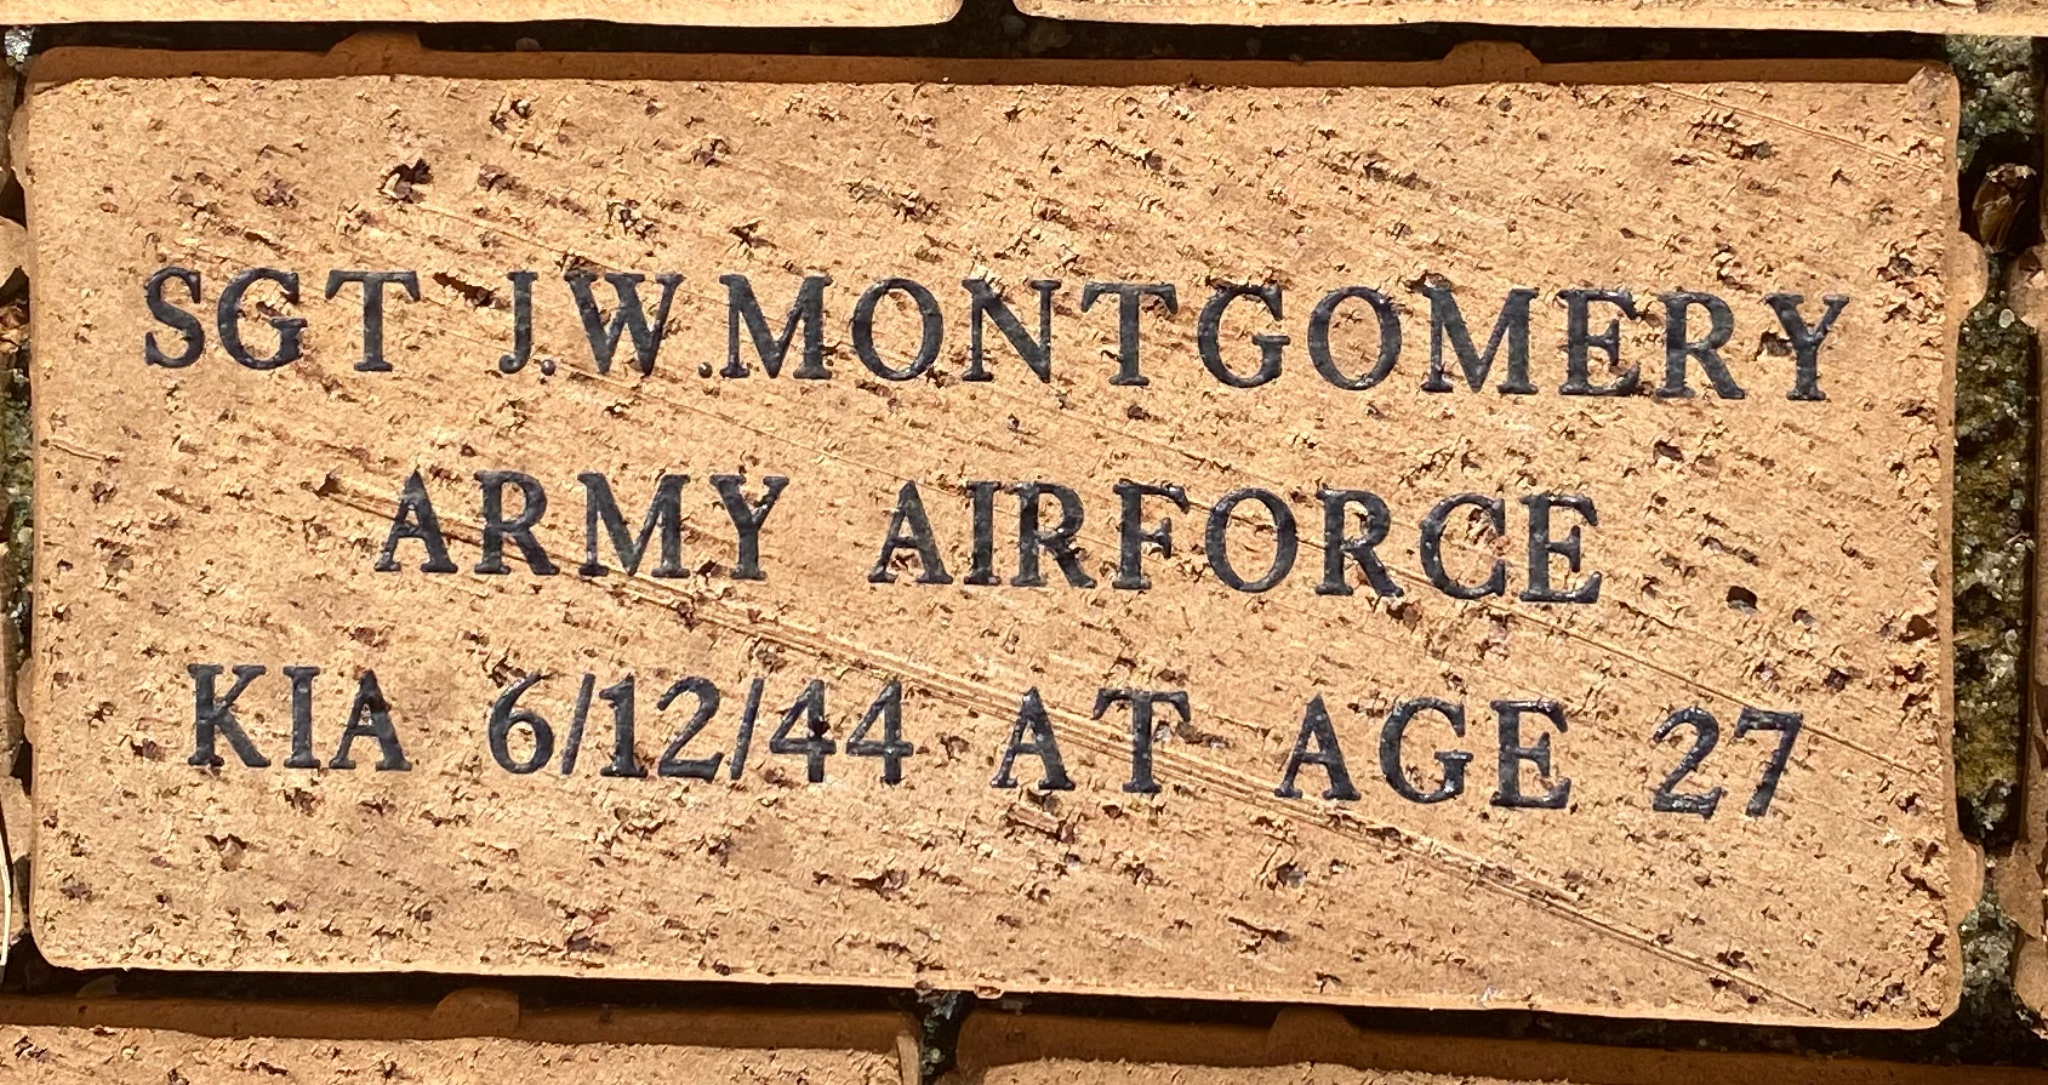 SGT J.W.MONTGOMERY ARMY AIRFORCE KIA 6/12/44 AT AGE 27